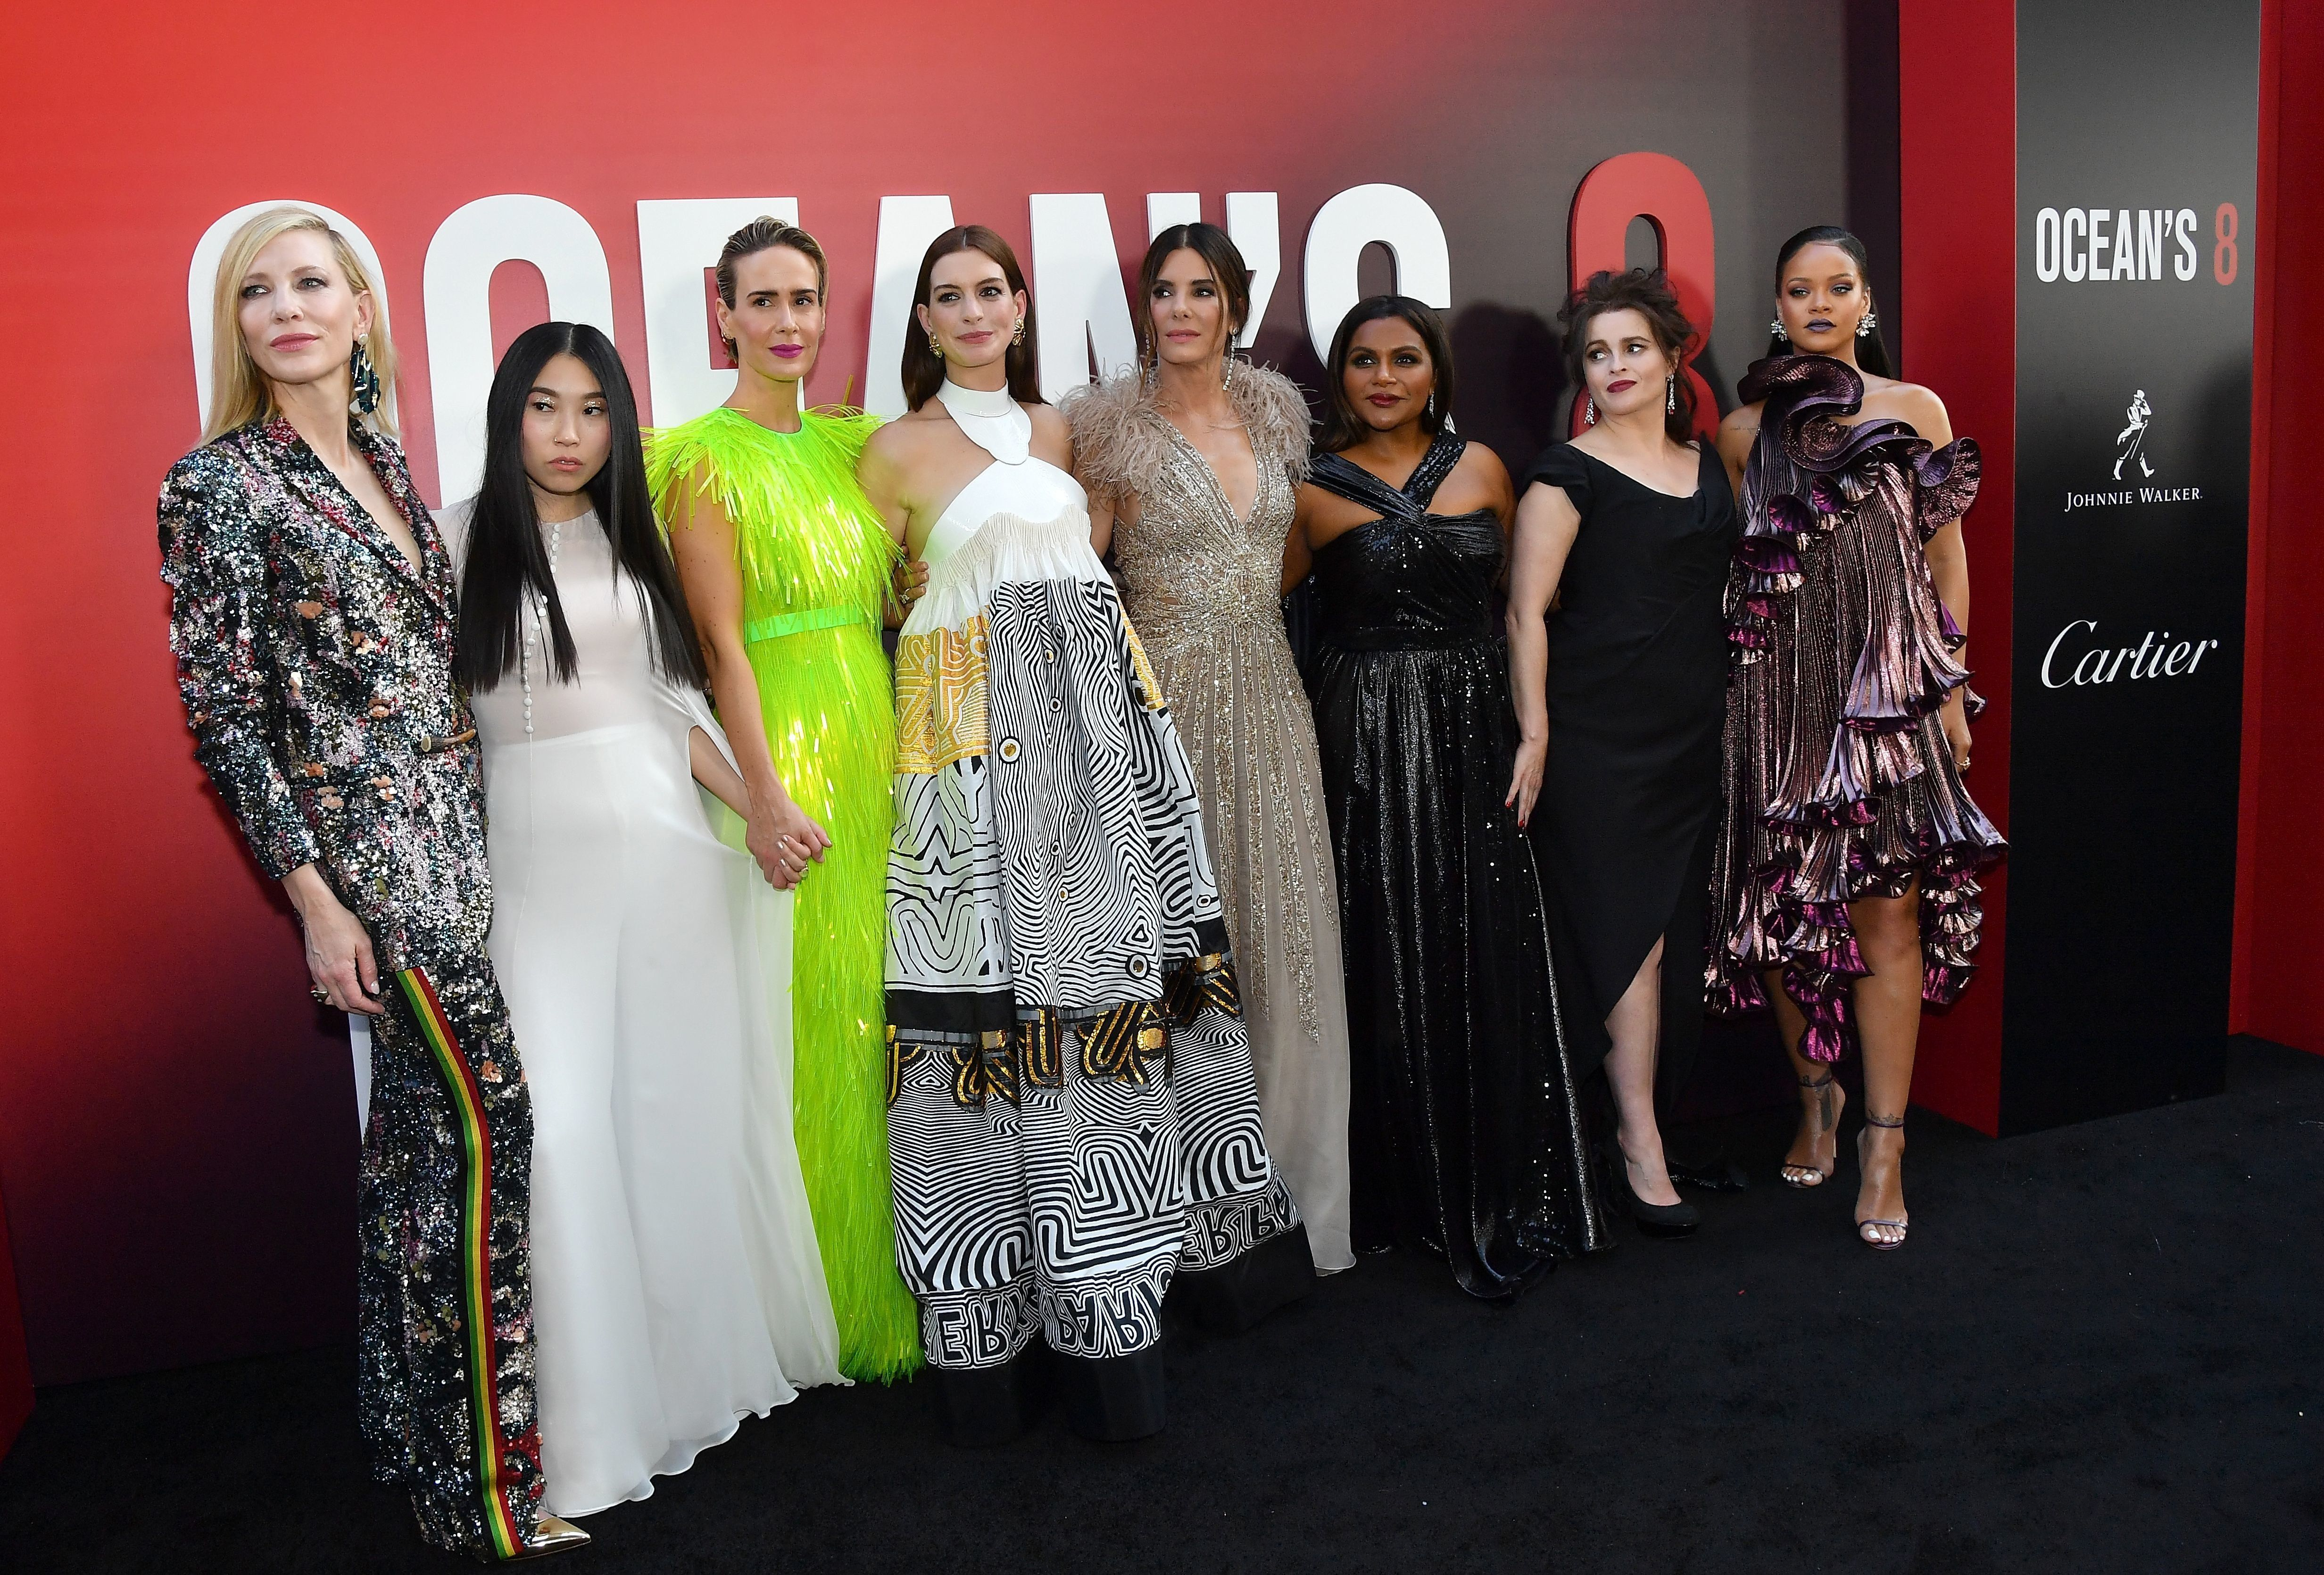 Members of the cast (fromL) Australian actress Cate Blanchett, rapper/actress Awkwafina, US actresses Sarah Paulson, Anne Hathaway, Sandra Bullock, Mindy Kaling, British actress Helena Bonham Carter and Barbadian singer/actress Rihanna attend the world premiere of Ocean's 8 on June 5, 2018 in New York. - Ocean's 8 will be released nationwide on June 8, 2018. (Photo by ANGELA WEISS / AFP)        (Photo credit should read ANGELA WEISS/AFP/Getty Images)